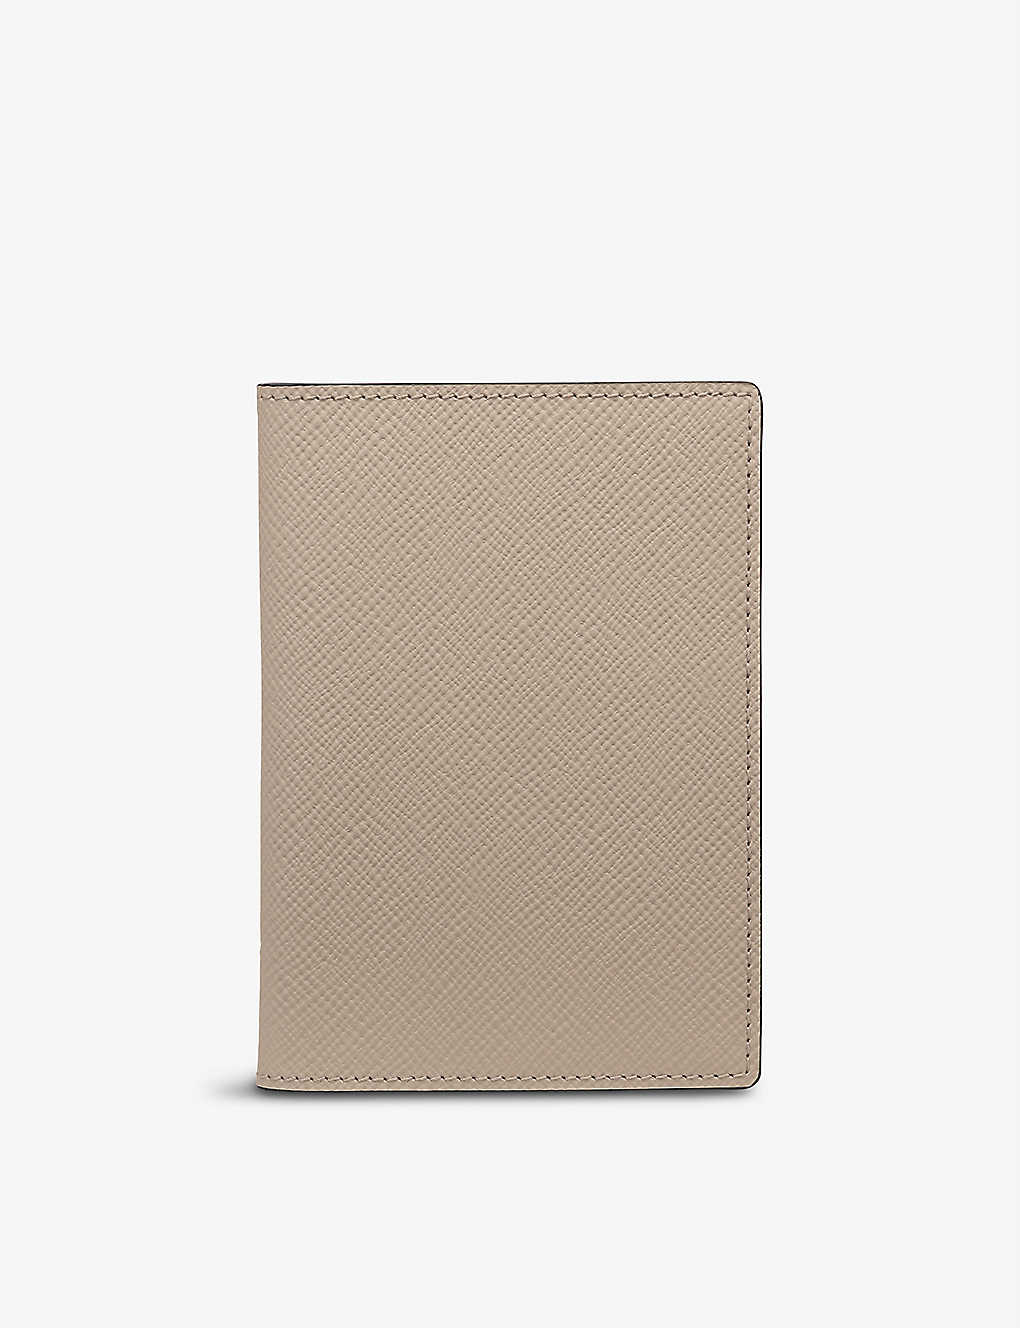 SMYTHSON: Sandstone leather passport cover